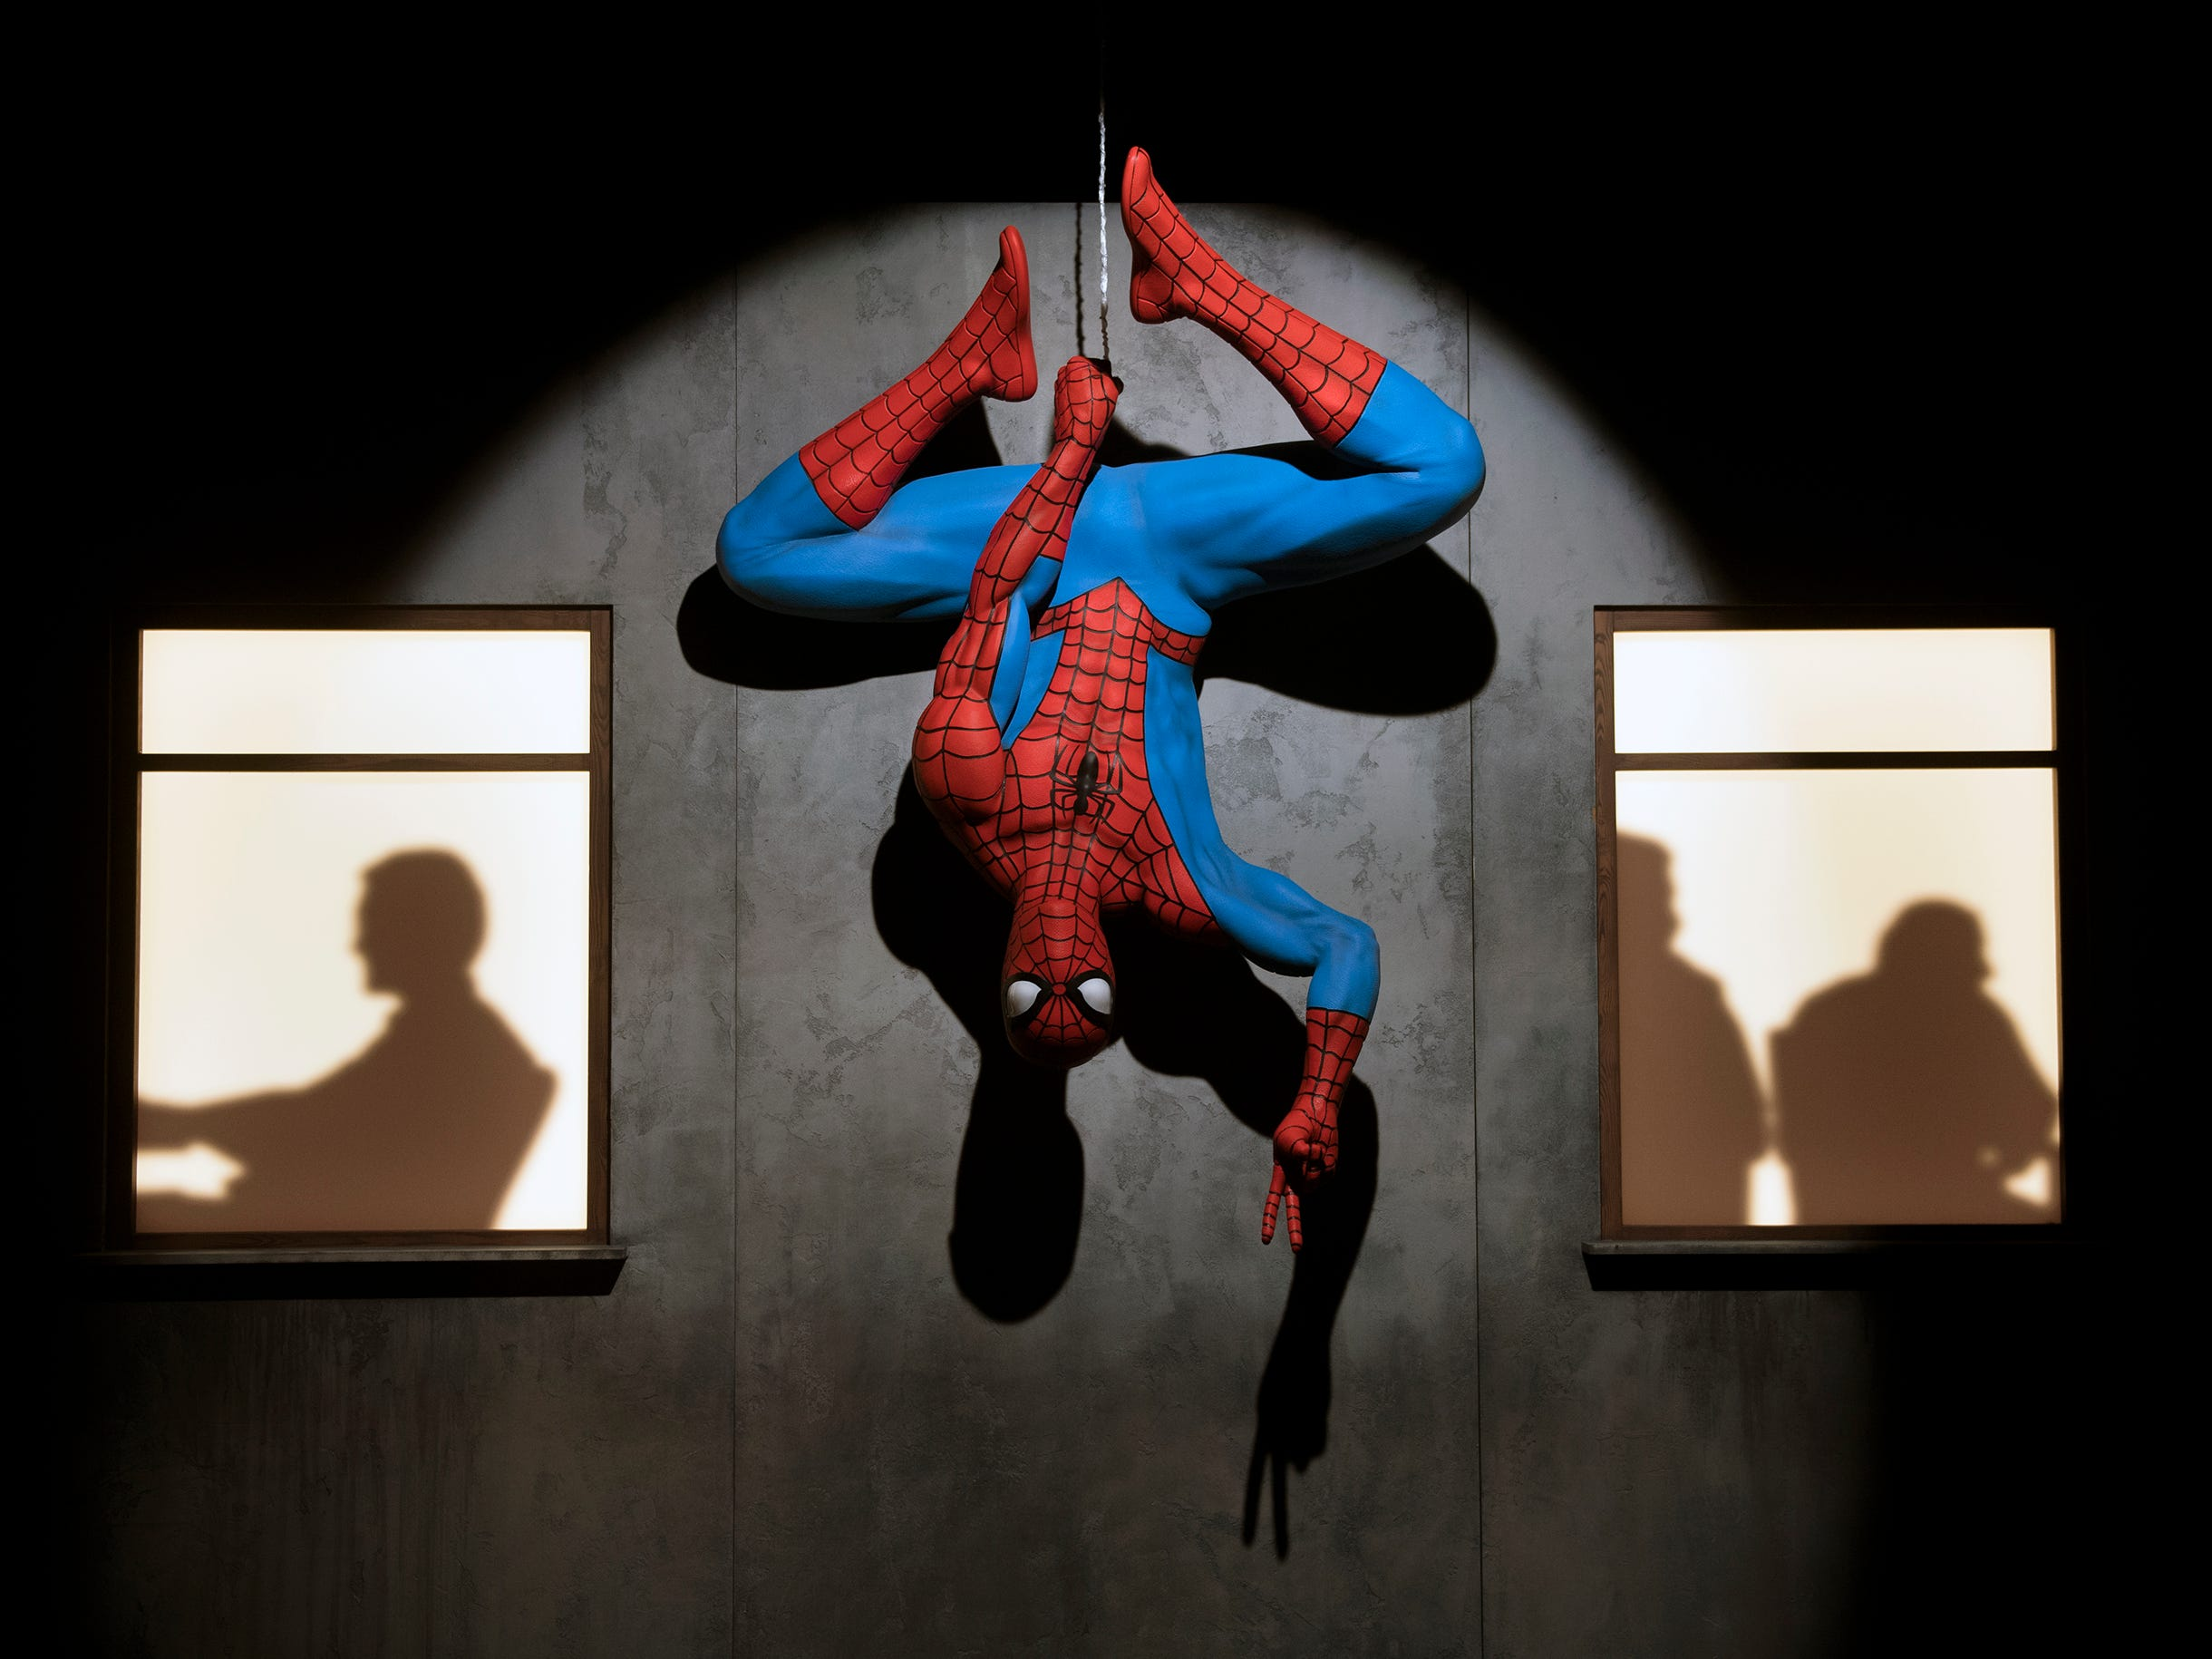 Spider-Man hangs from an exhibit at the new 'Marvel: Universe of Super Heroes' installation at the Franklin Institute Friday, April 12, 2019 in Philadelphia, Pa. The exhibit runs from April 13-September 2.